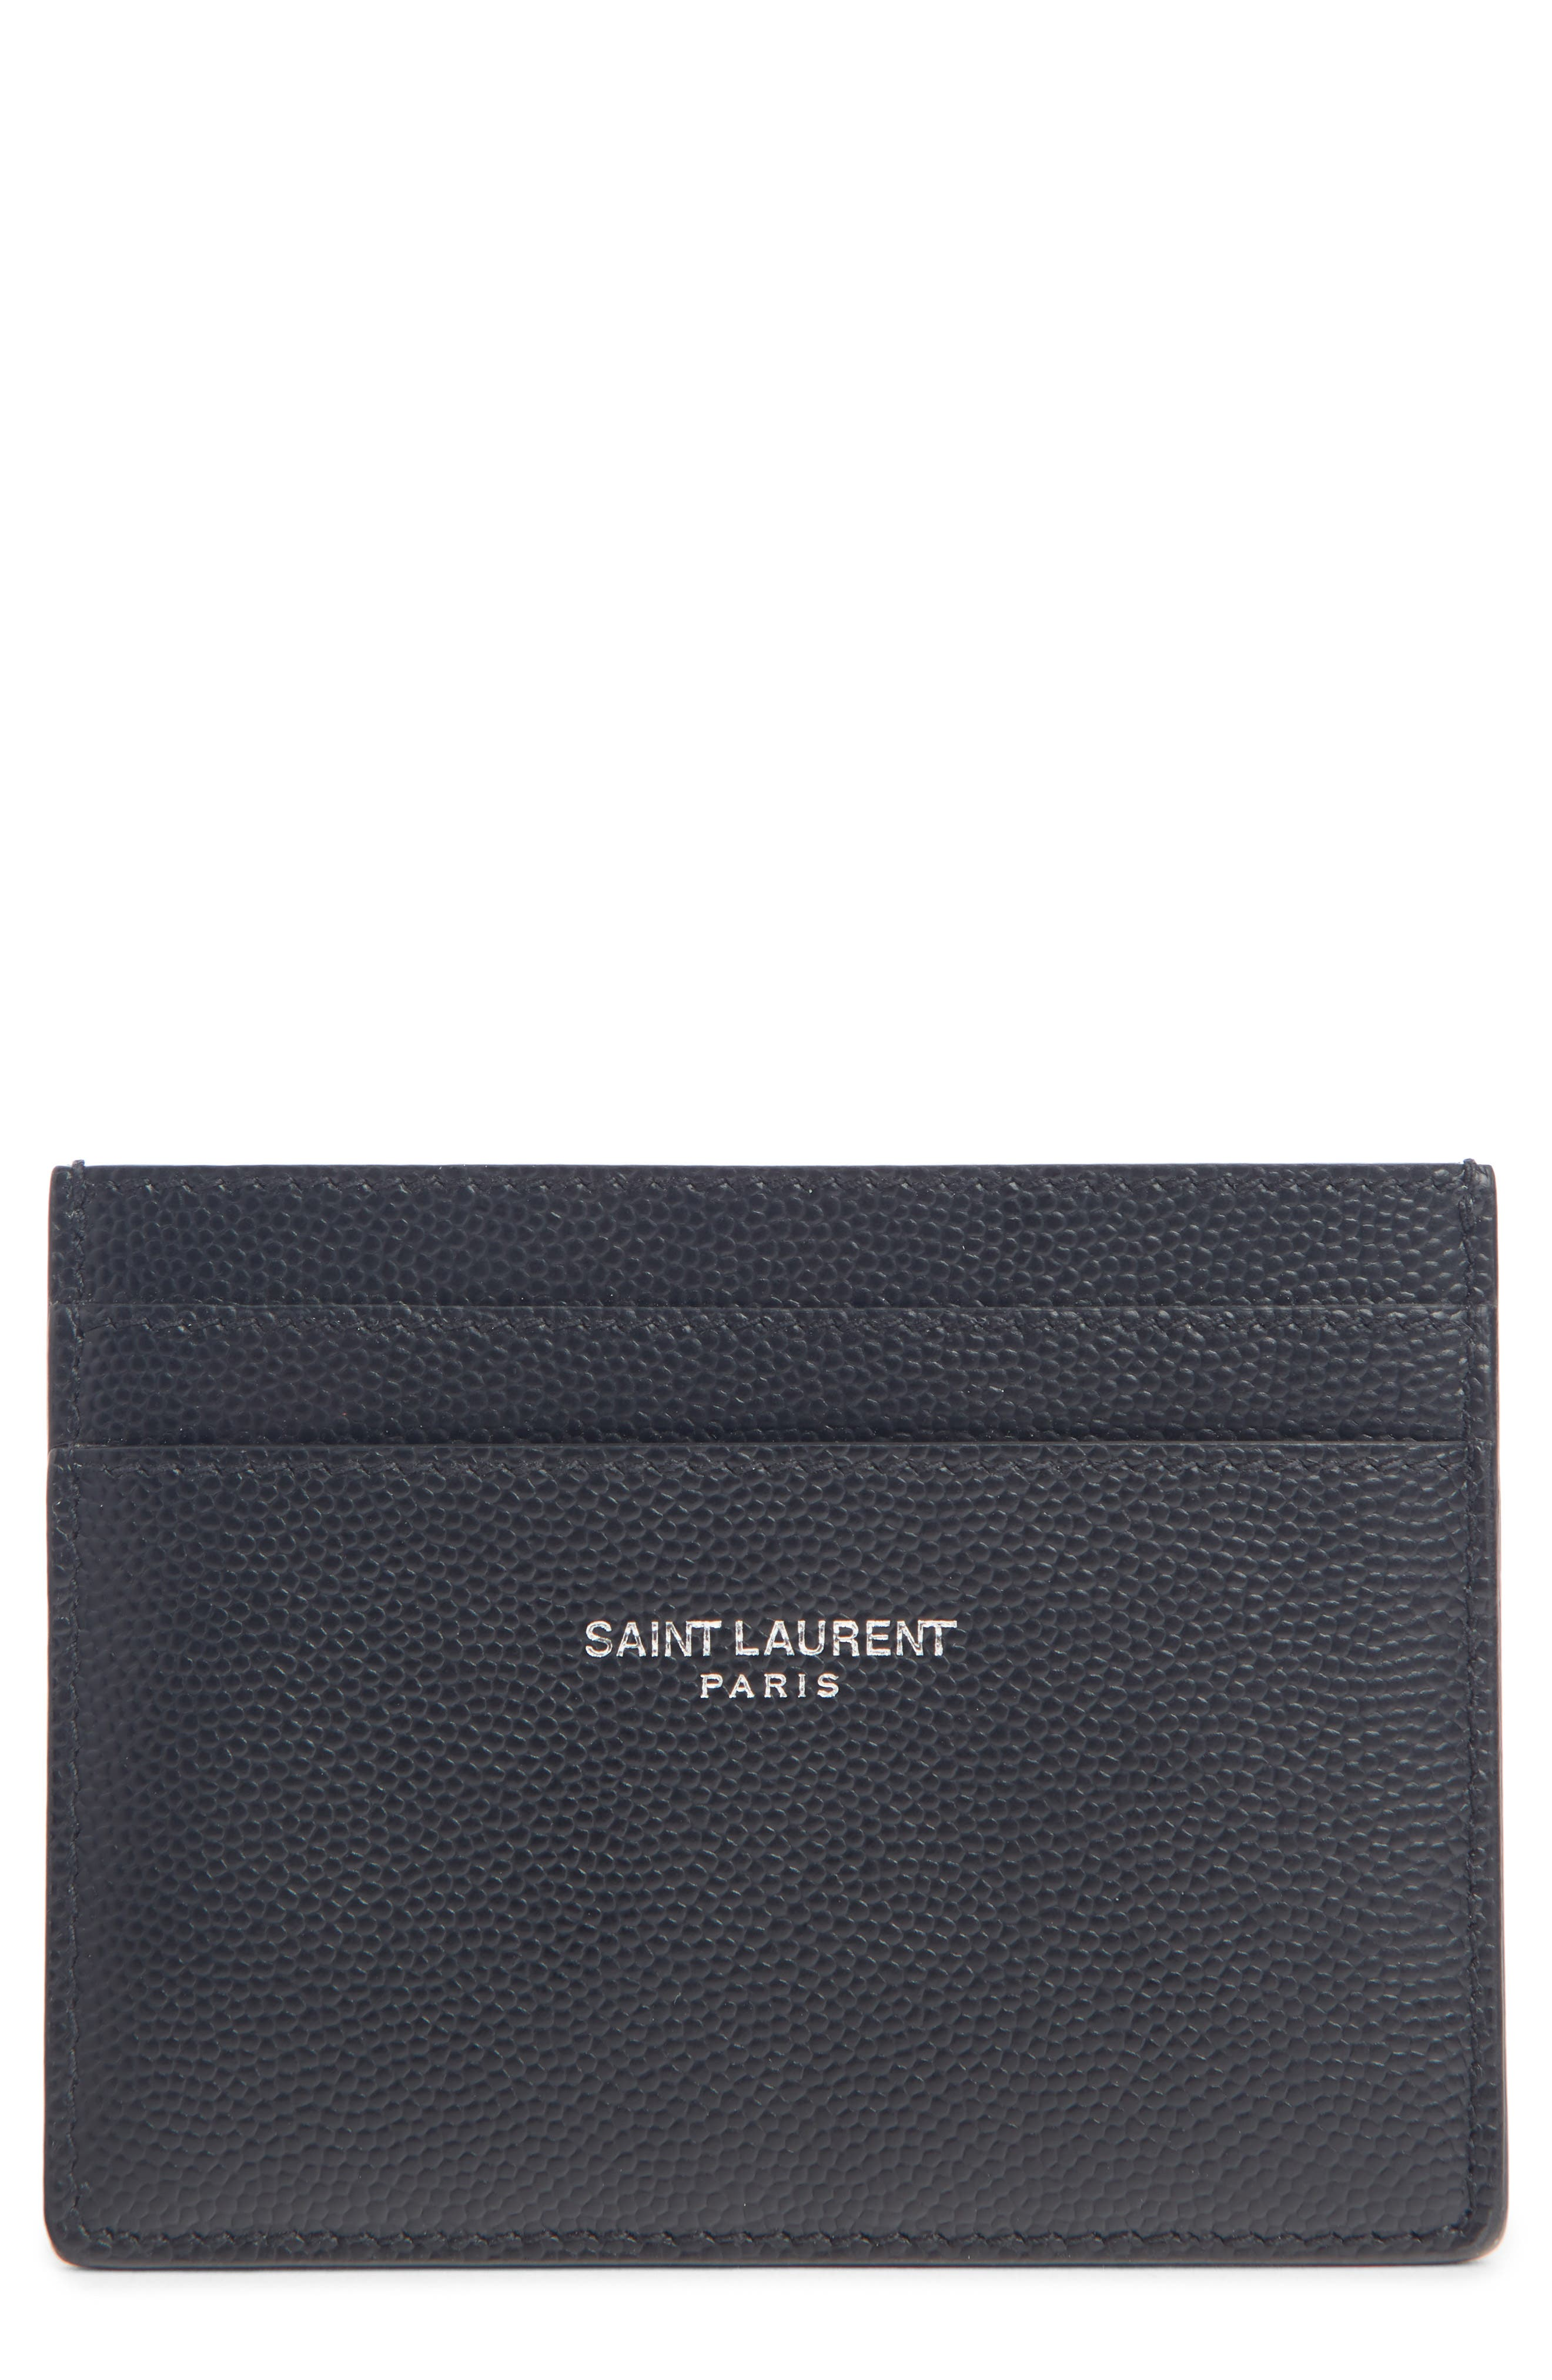 Classic Leather Card Case,                             Main thumbnail 1, color,                             001